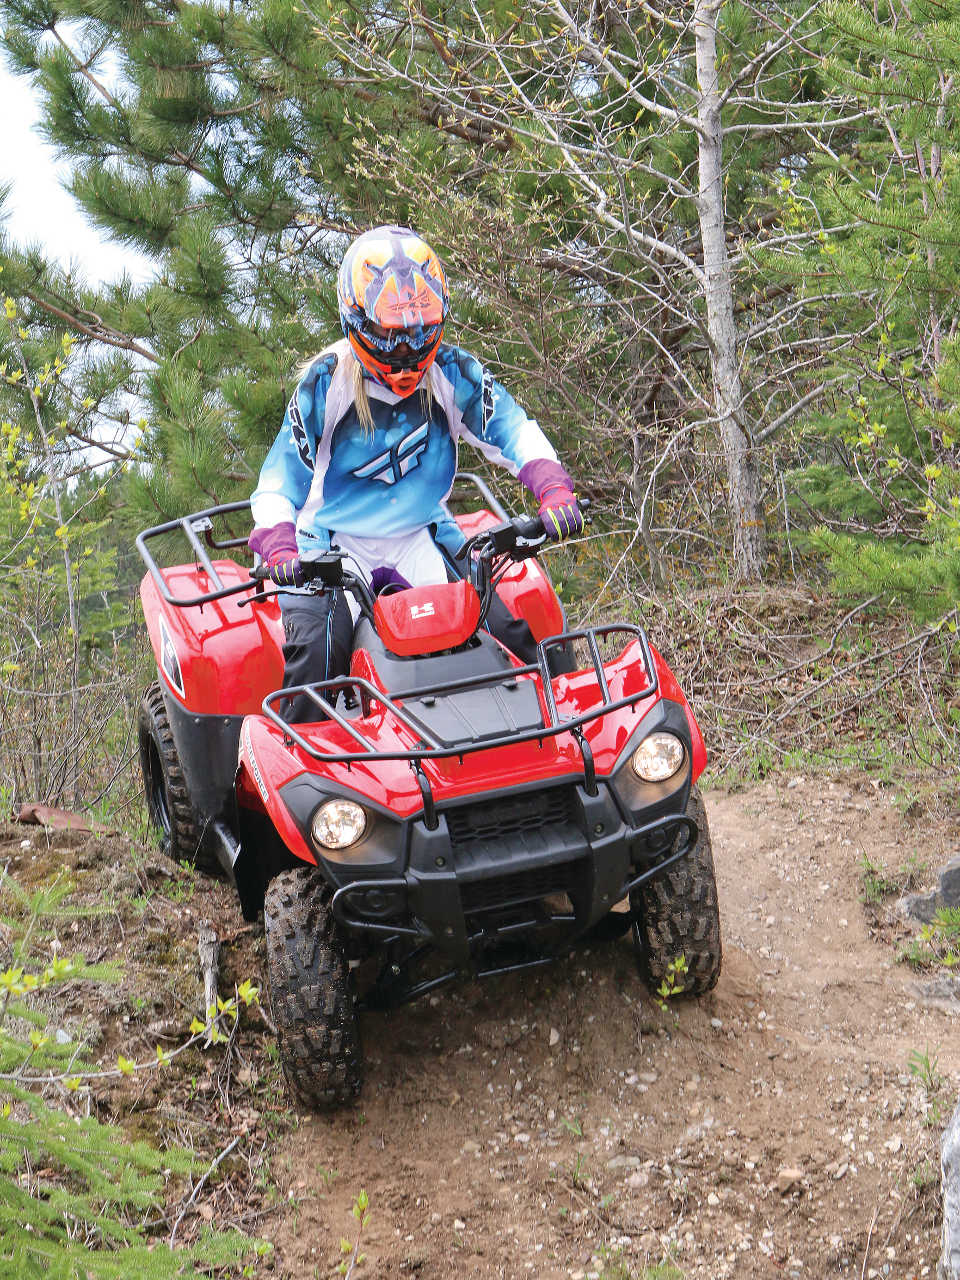 2014 kawasaki brute force 300 review | atv illustrated